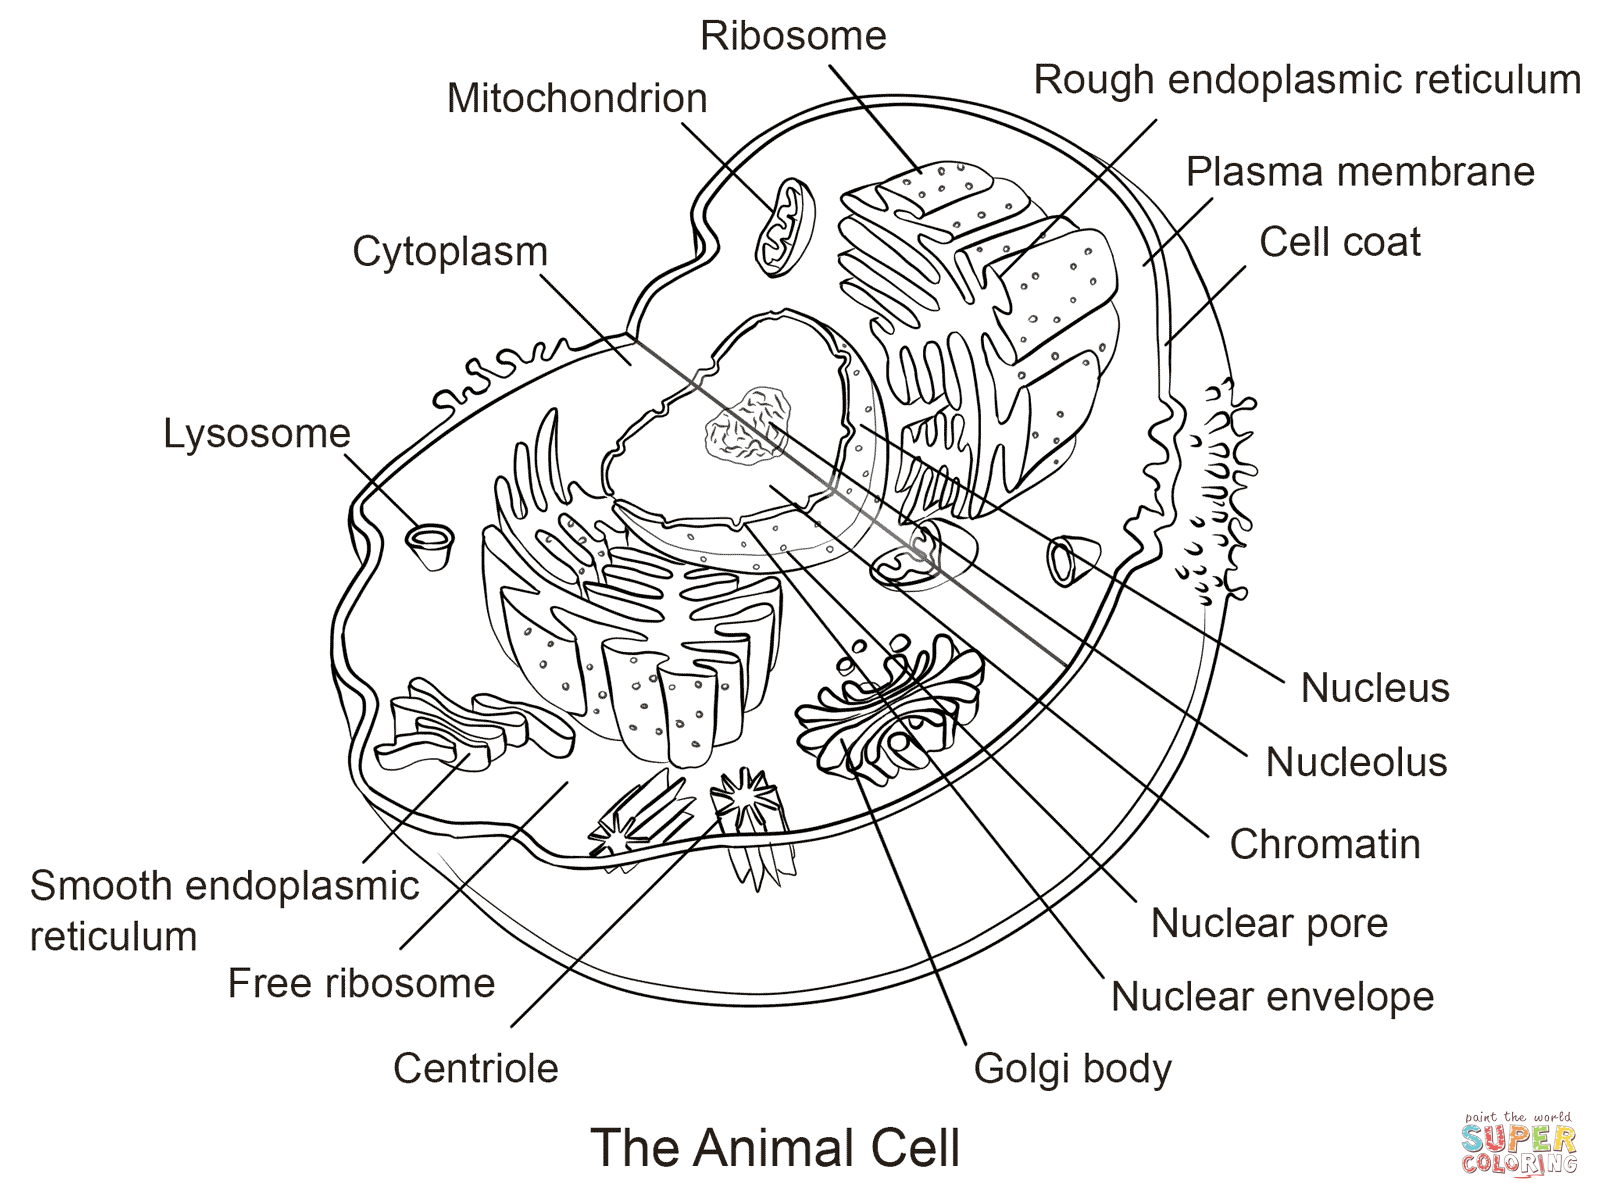 animal cell coloring page from biology category  select from 27571 printable crafts of cartoons